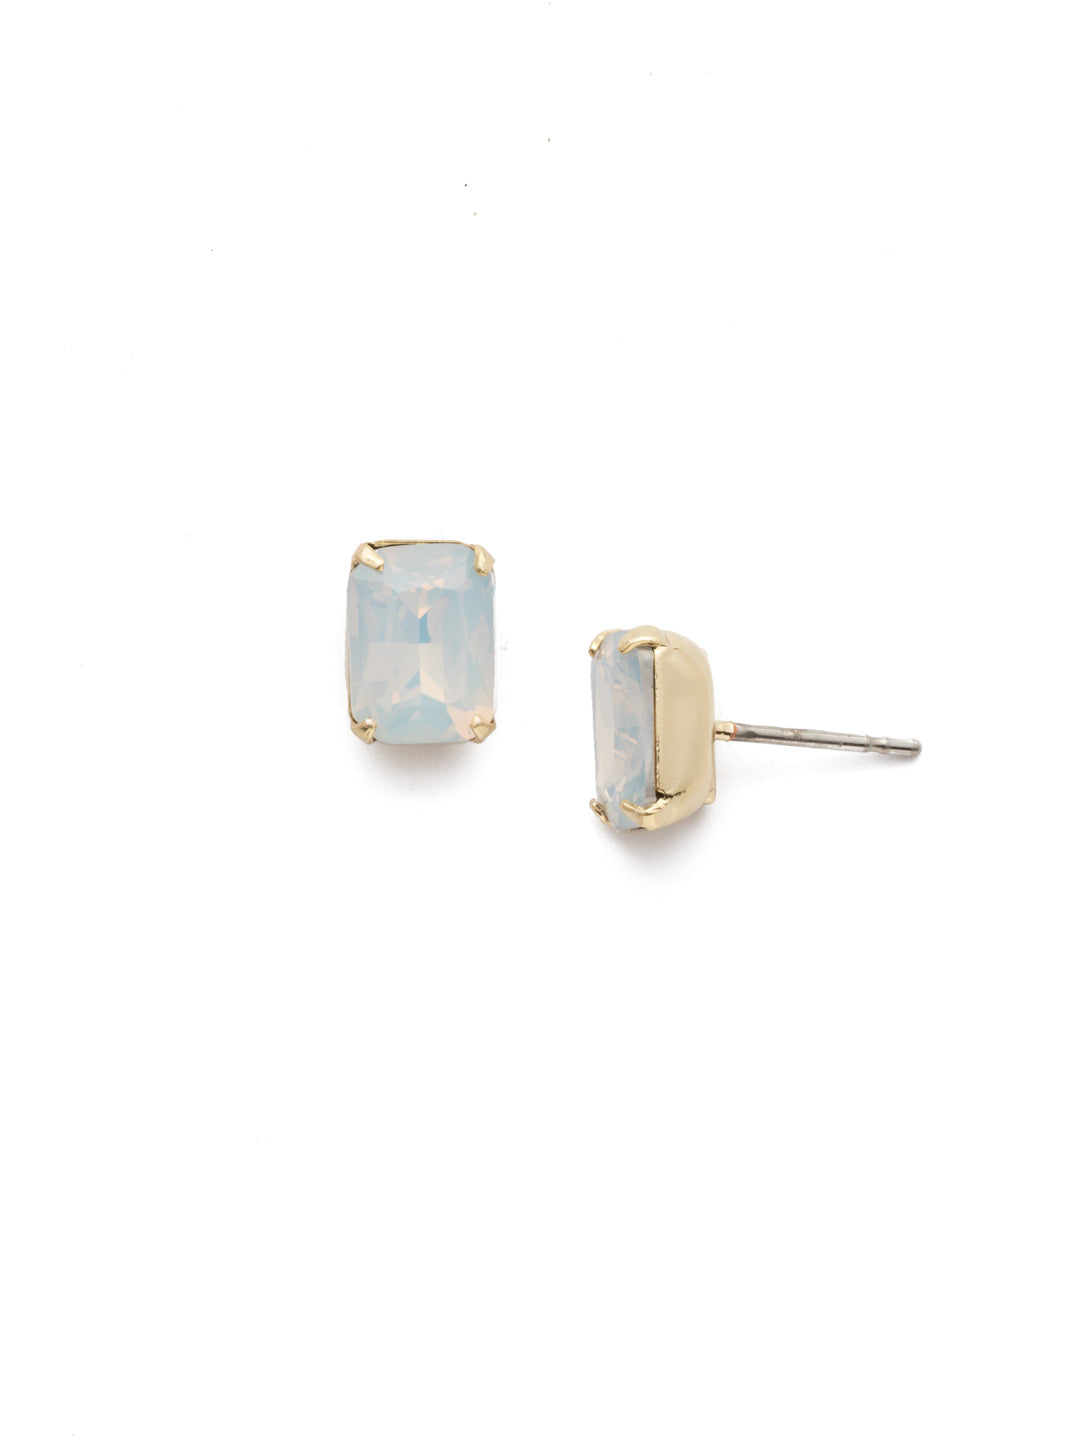 Mini Emerald Cut Stud Earrings - EBY42BGWO